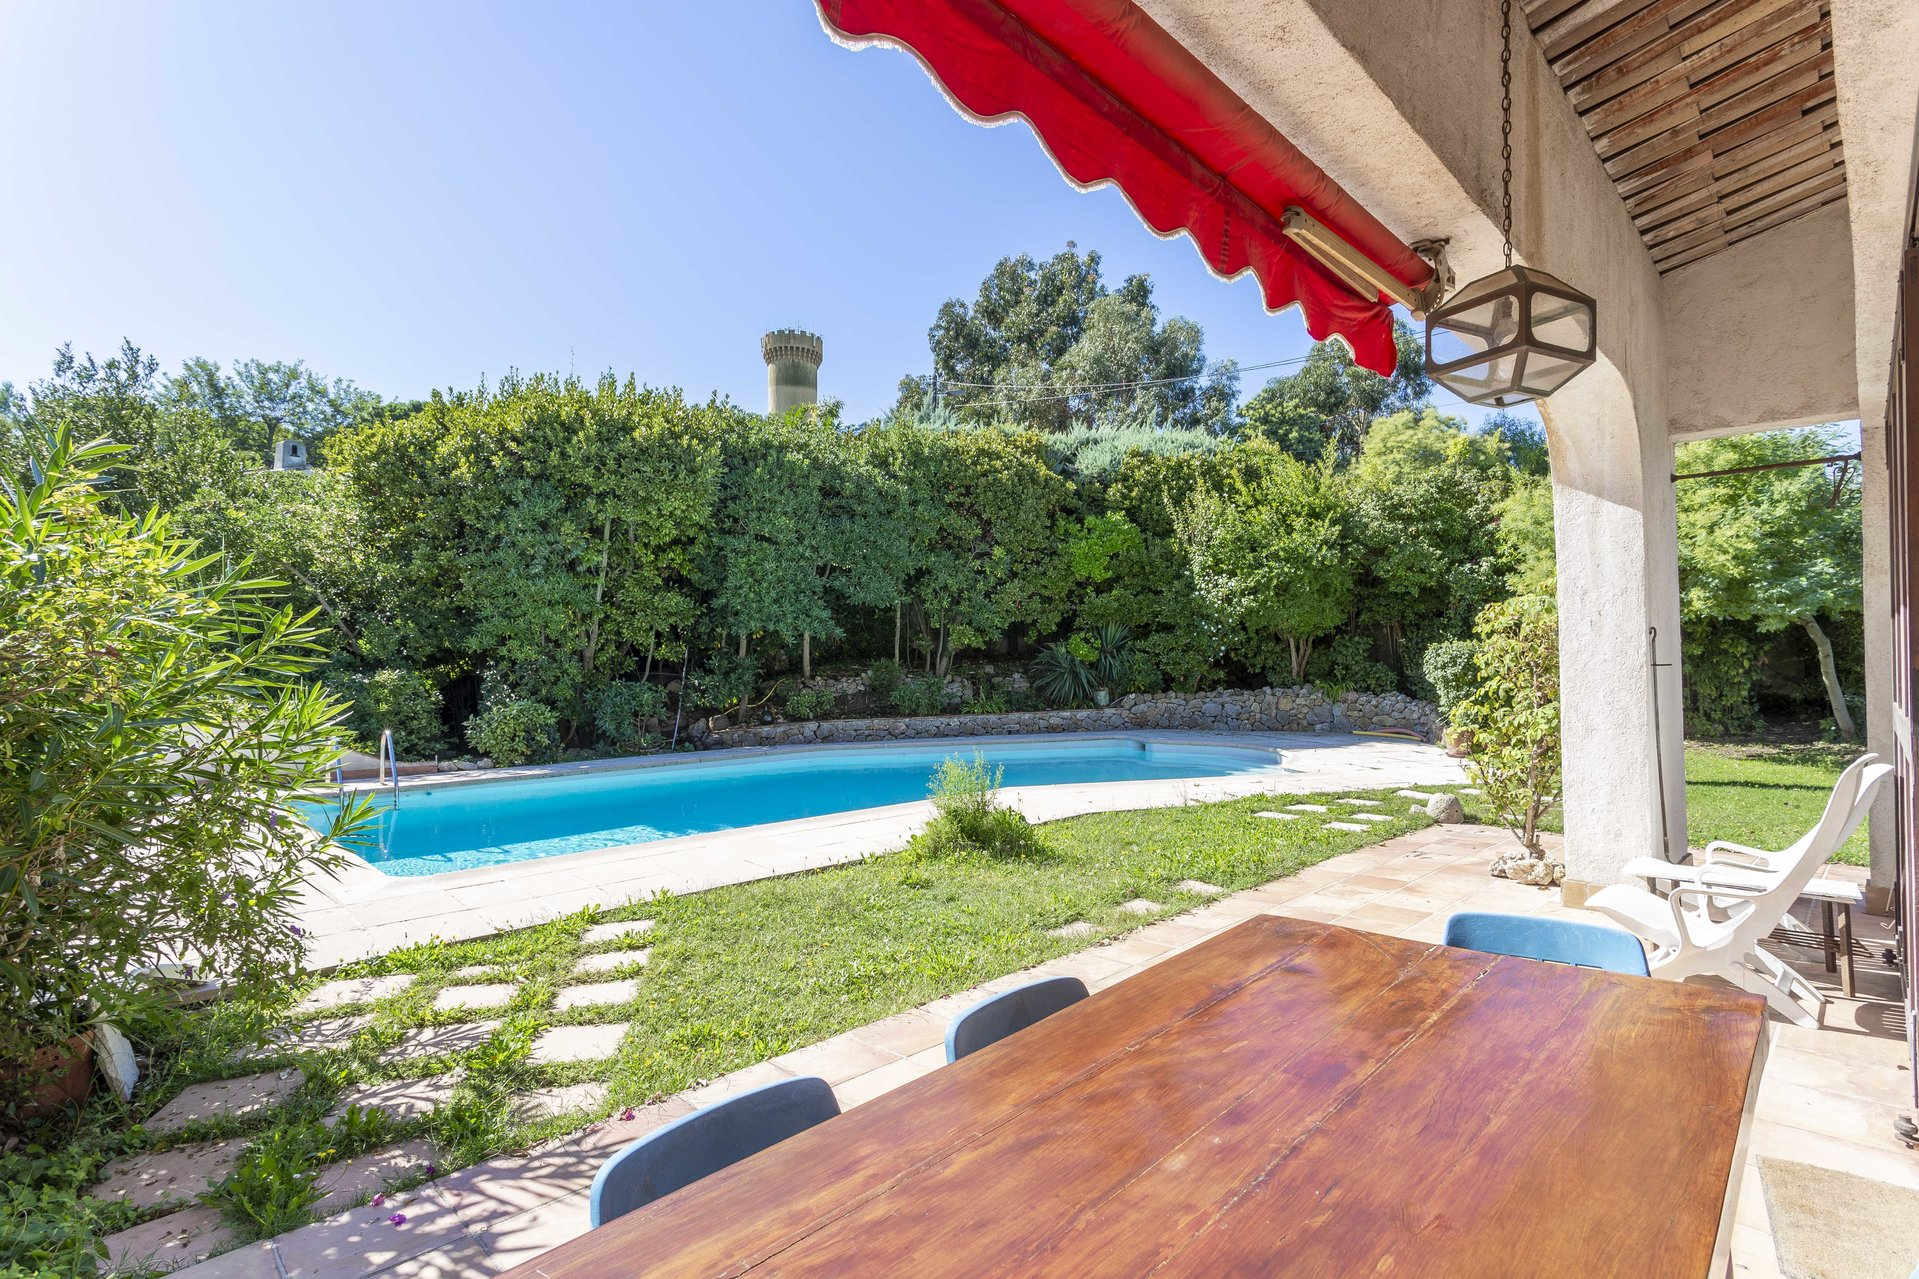 SUPER CANNES - PLEASANT PROVENCAL VILLA